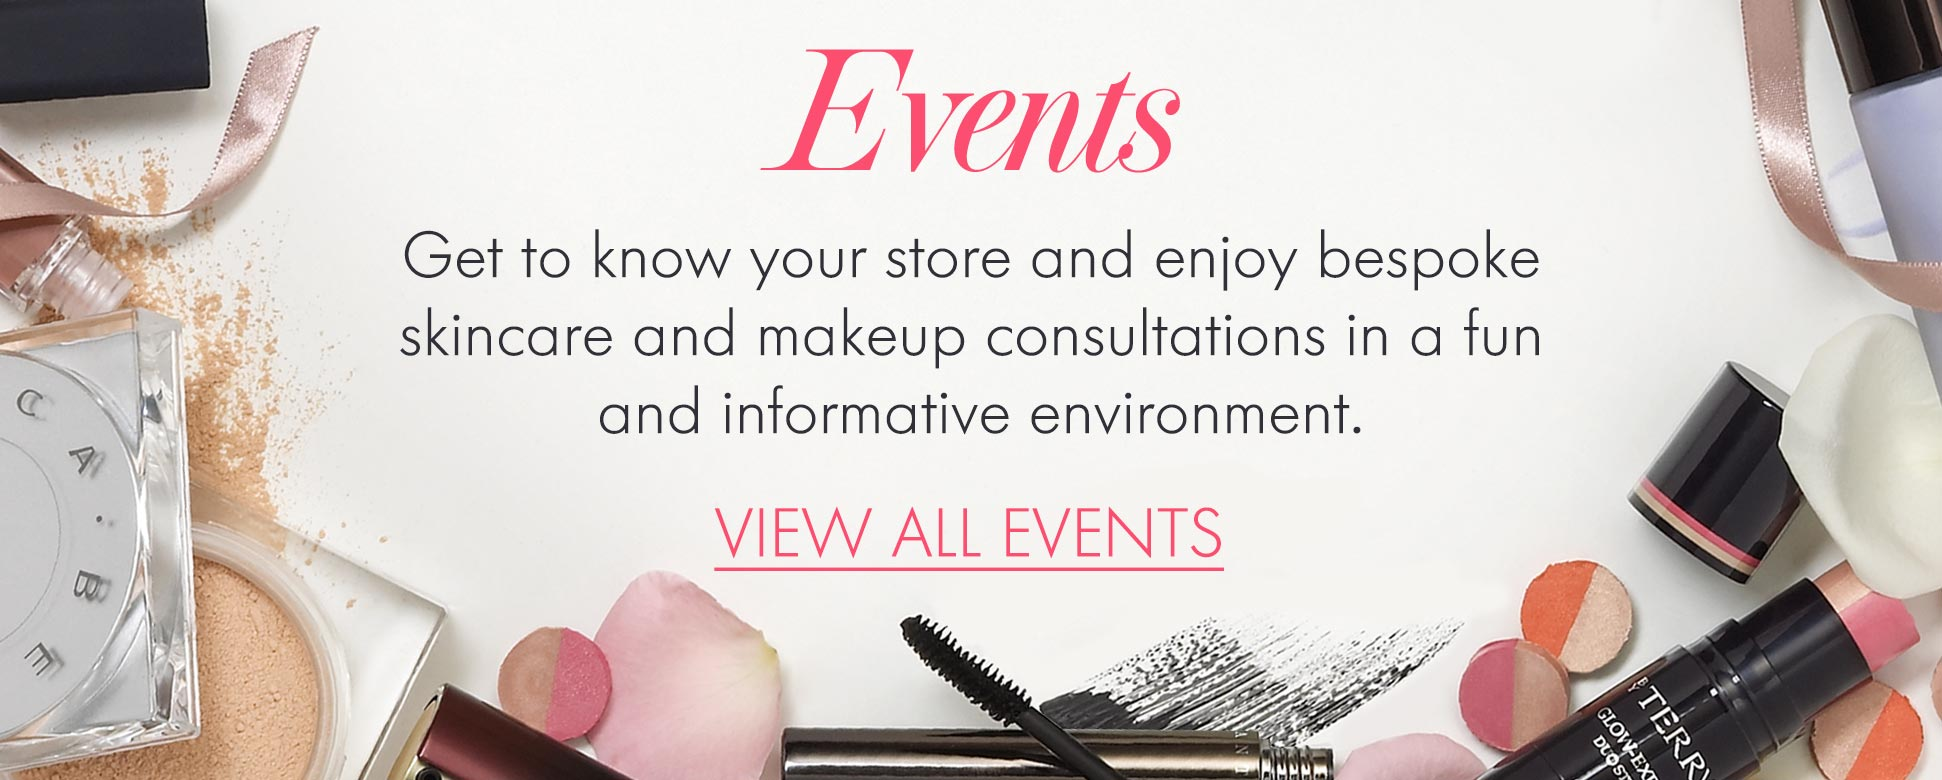 Space NK Events